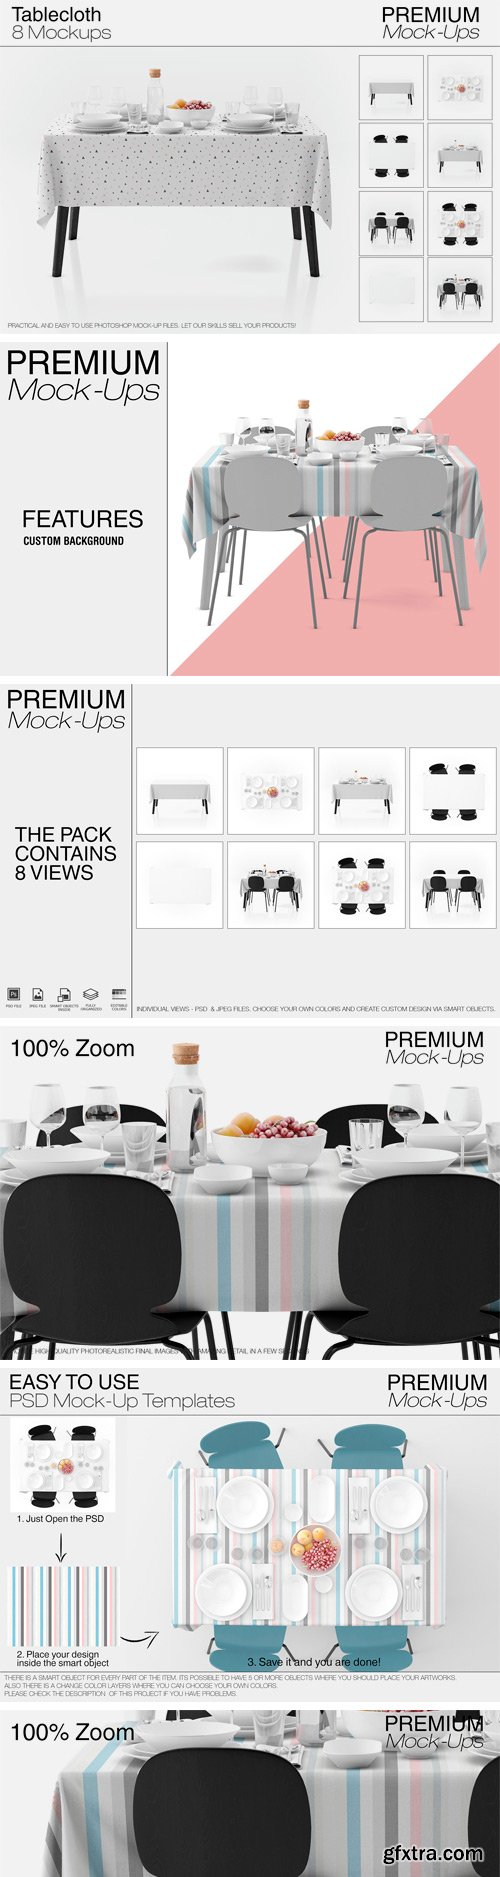 CM - Tablecloth Mockup Set 2431090